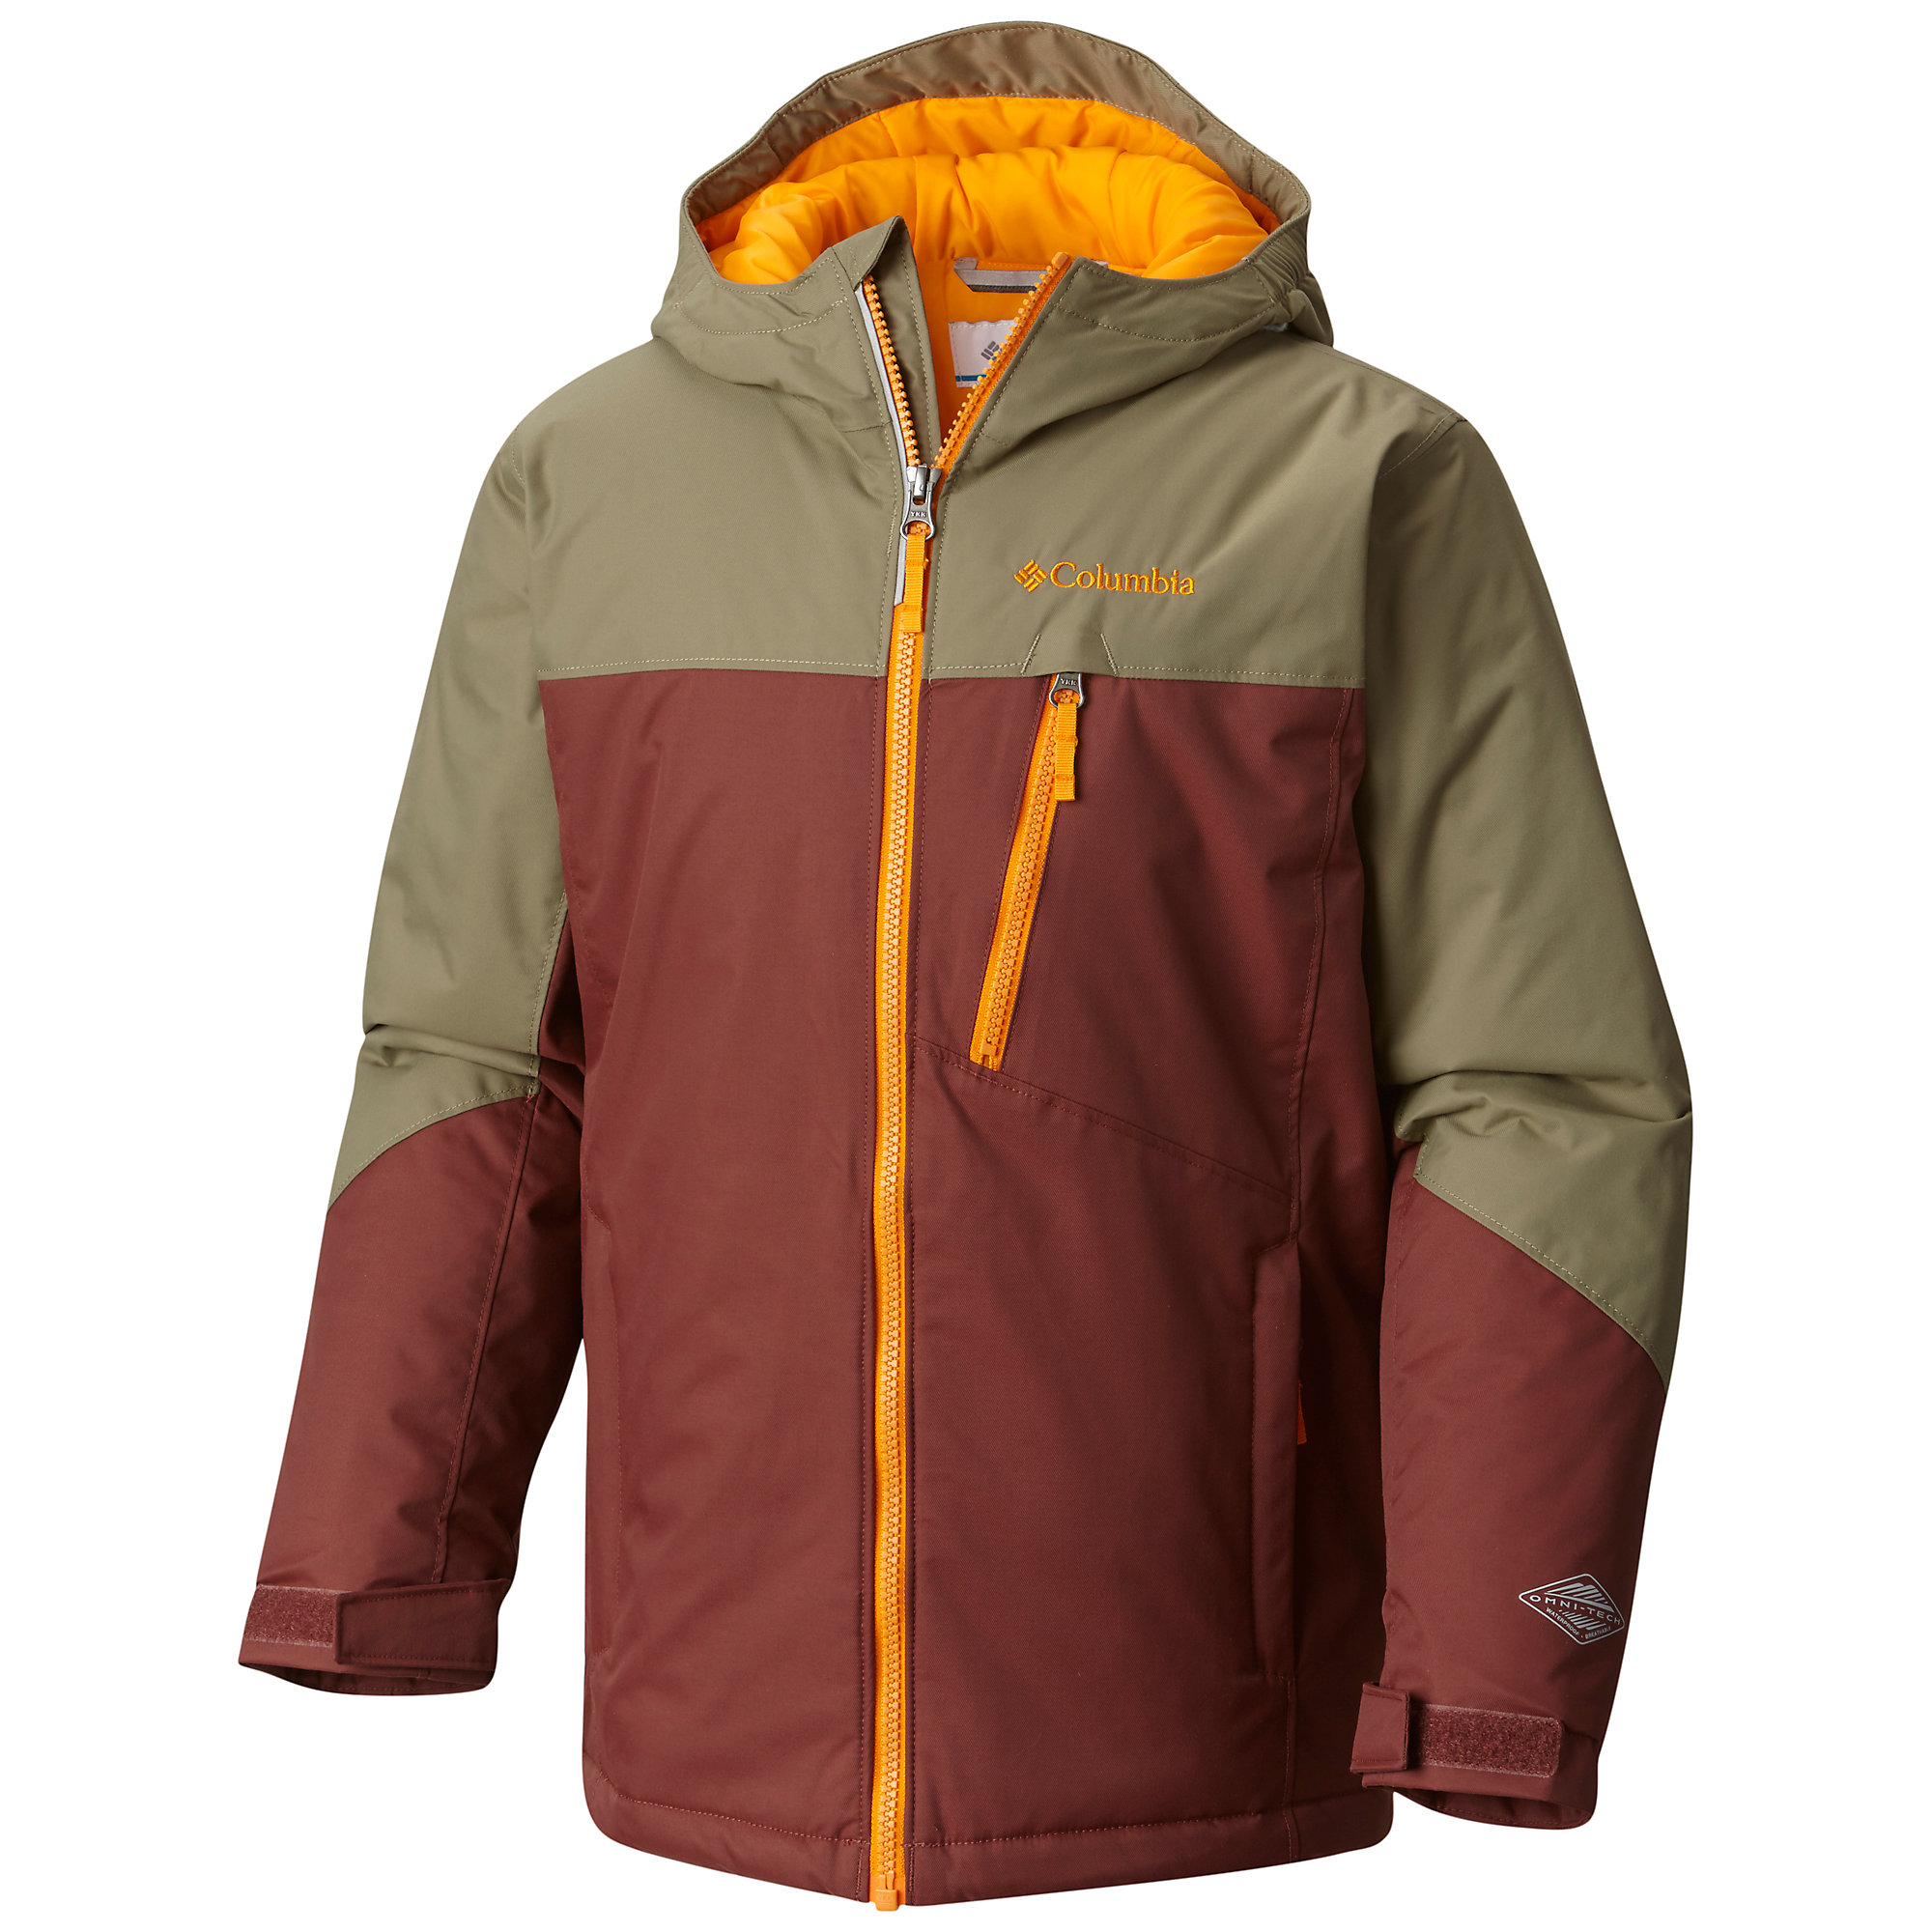 Columbia Double Grab Jacket